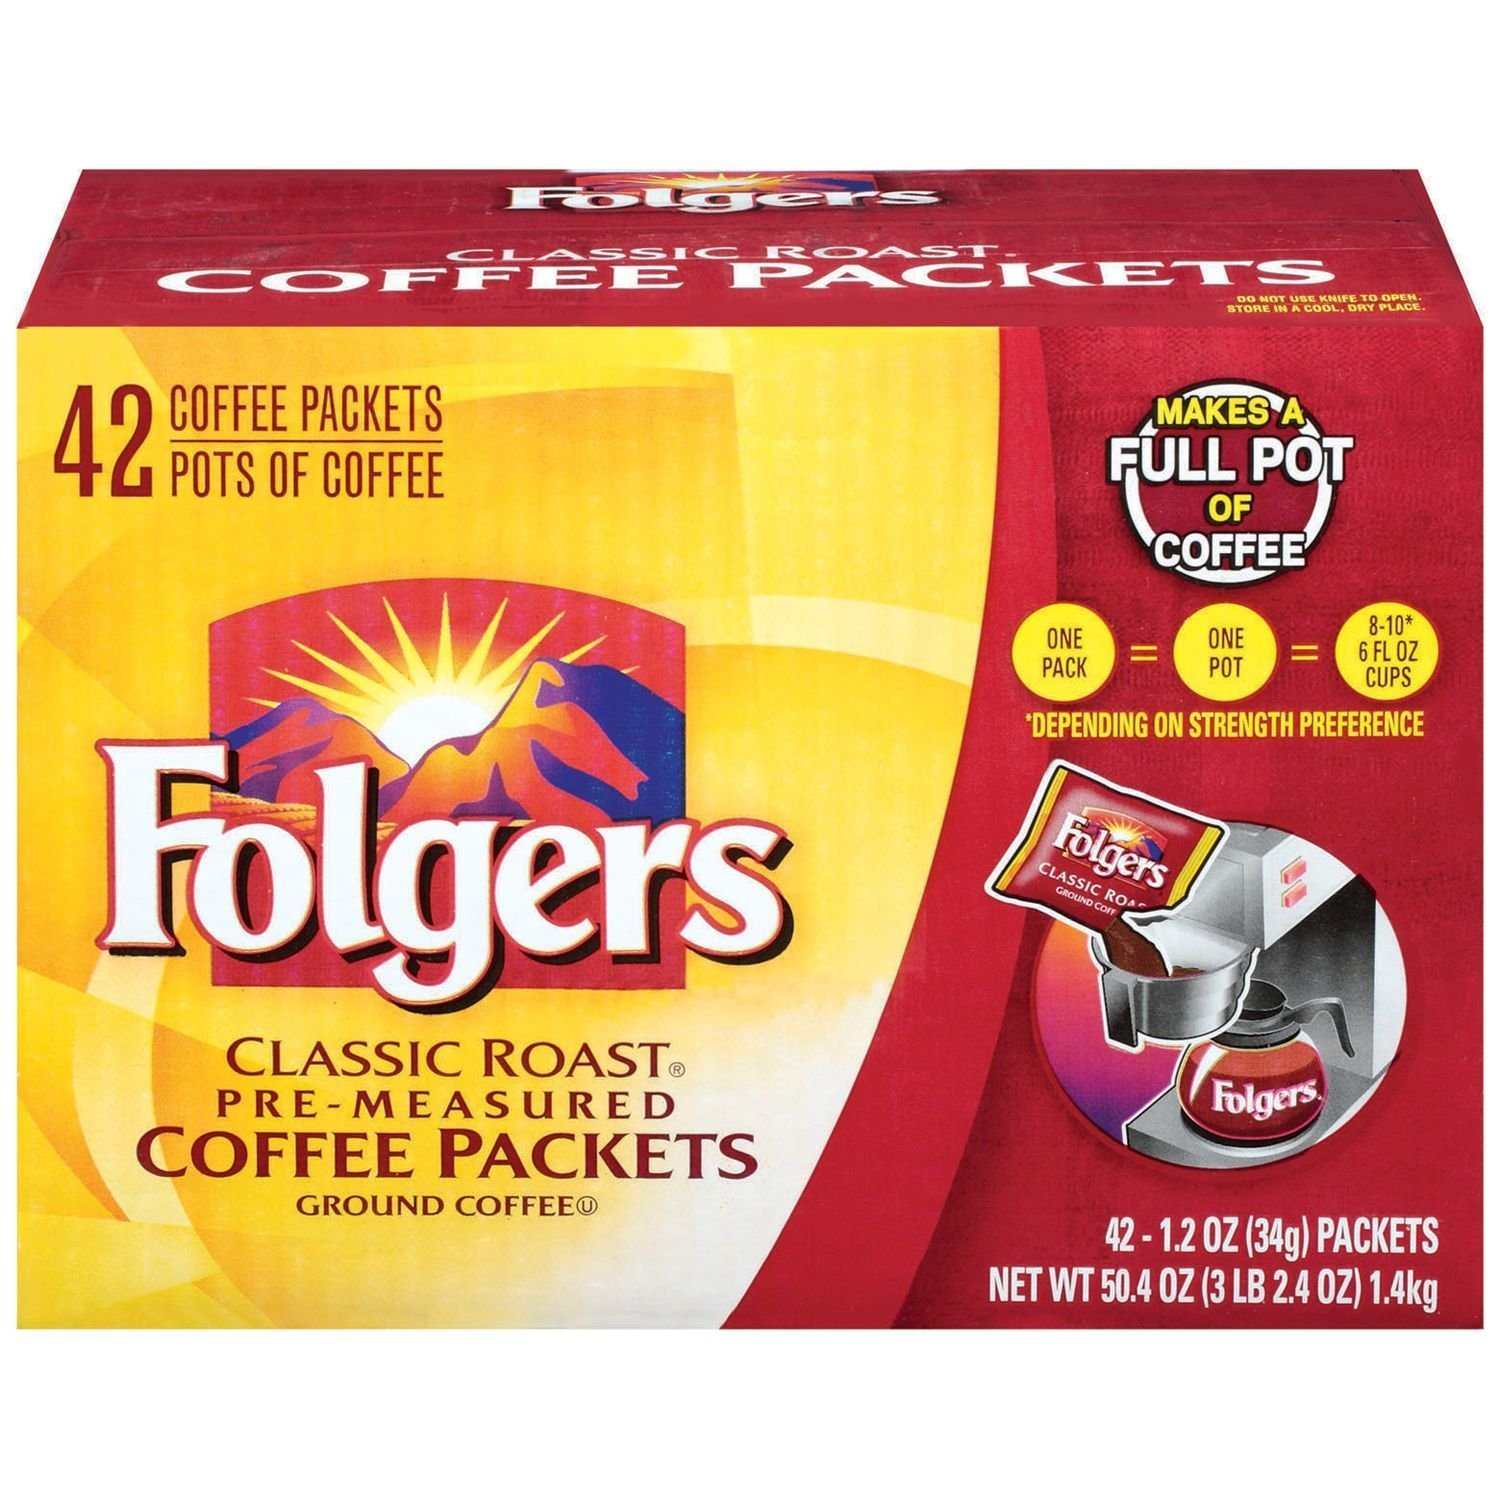 Folgers Classic Roast Ground Coffee Packets (1.2 oz., 42 ct.) (pack of 6) by Folgers (Image #1)